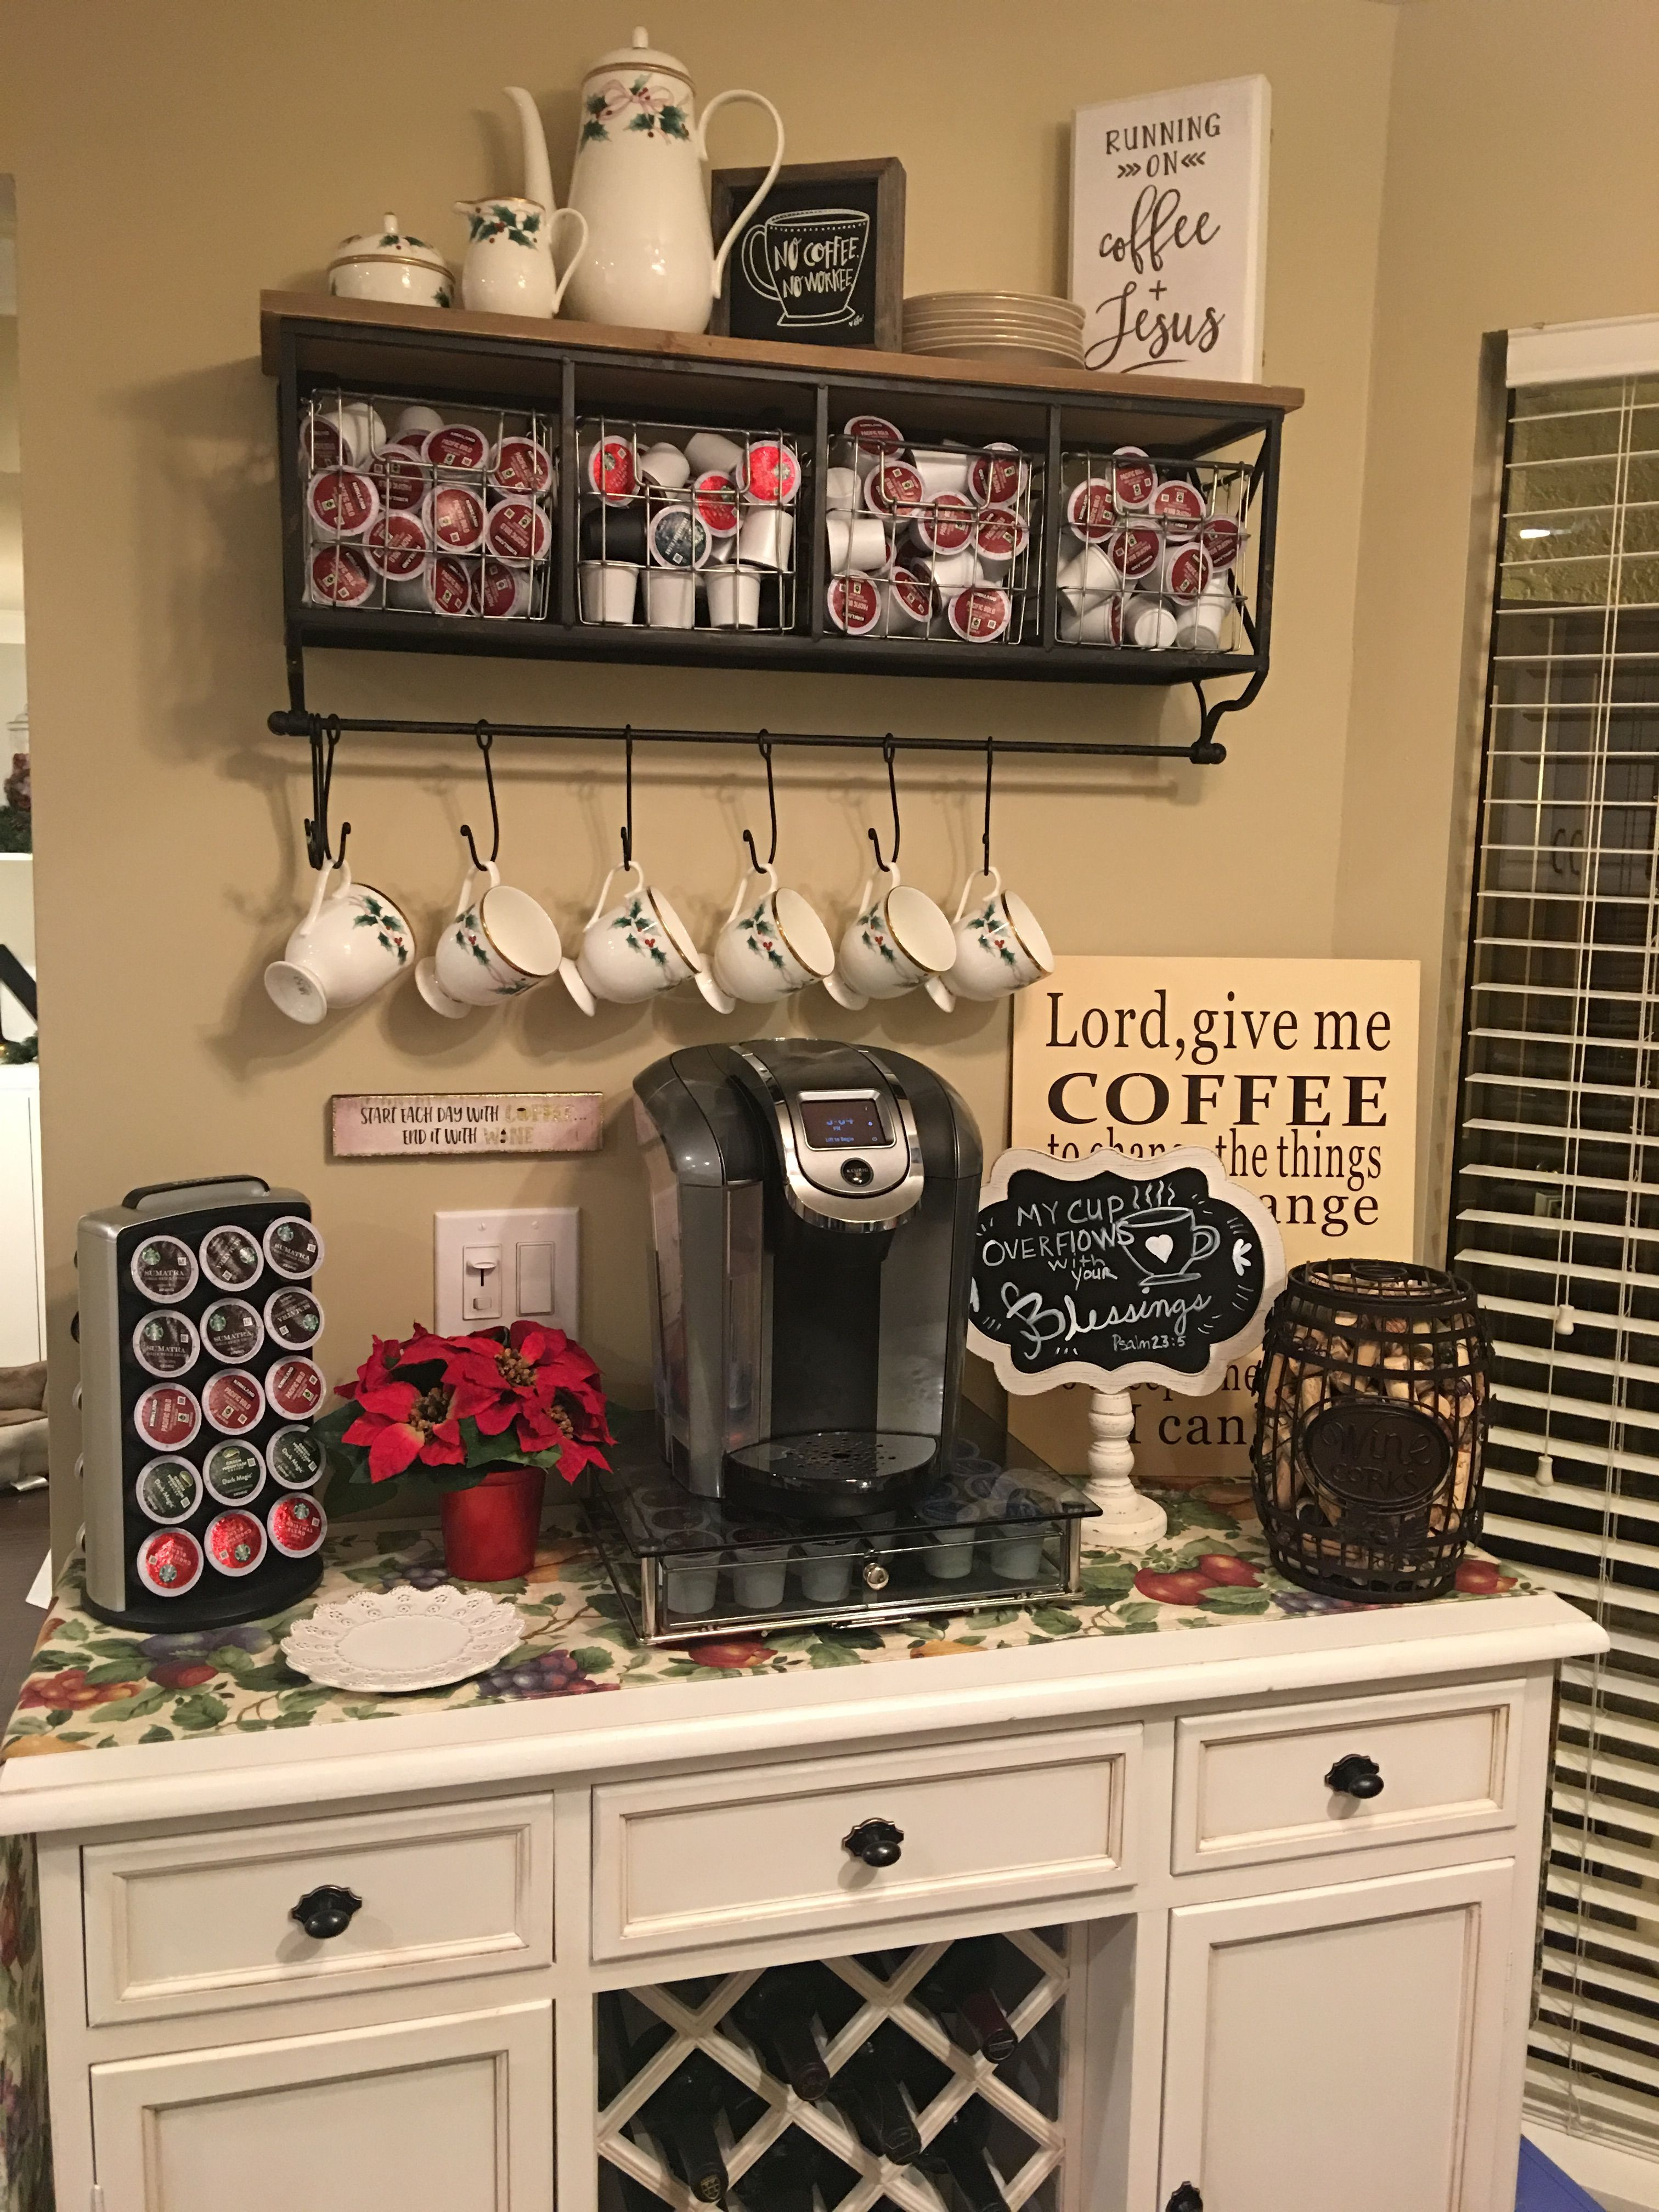 15 Charming Corner Coffee Bar Ideas for Your Home